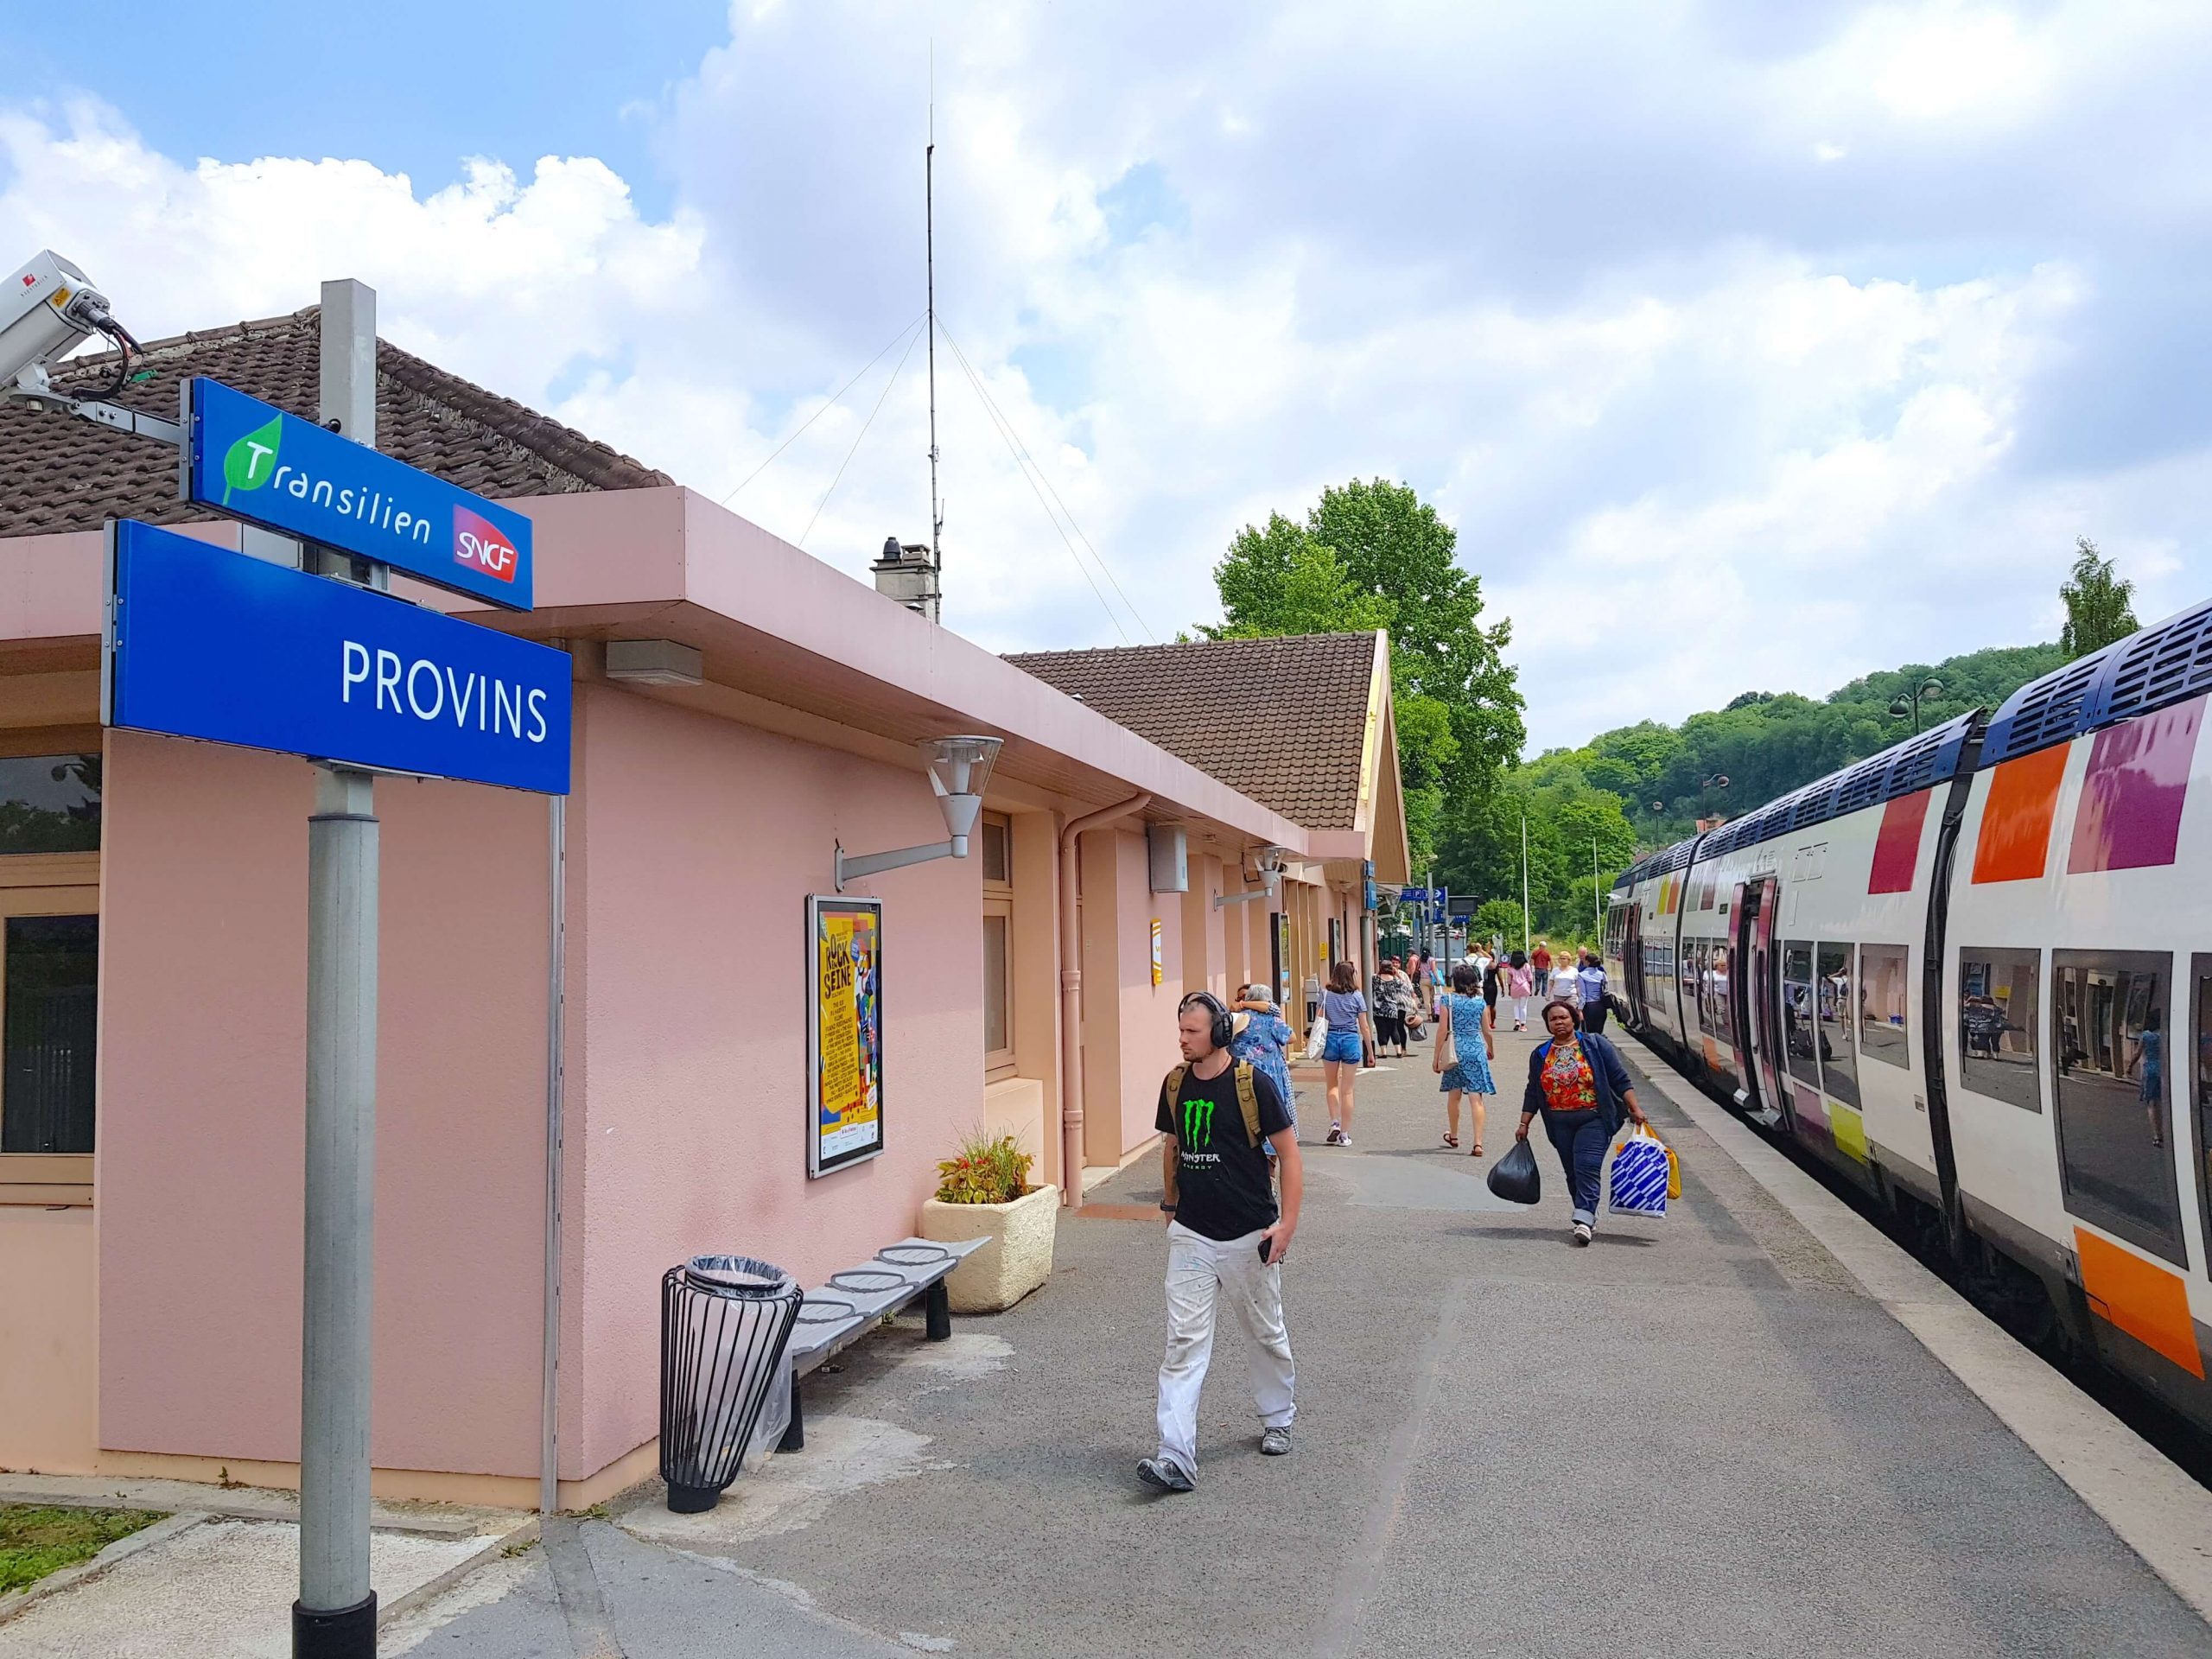 The train station at Provins - the best way to get to Provins from Paris is by train